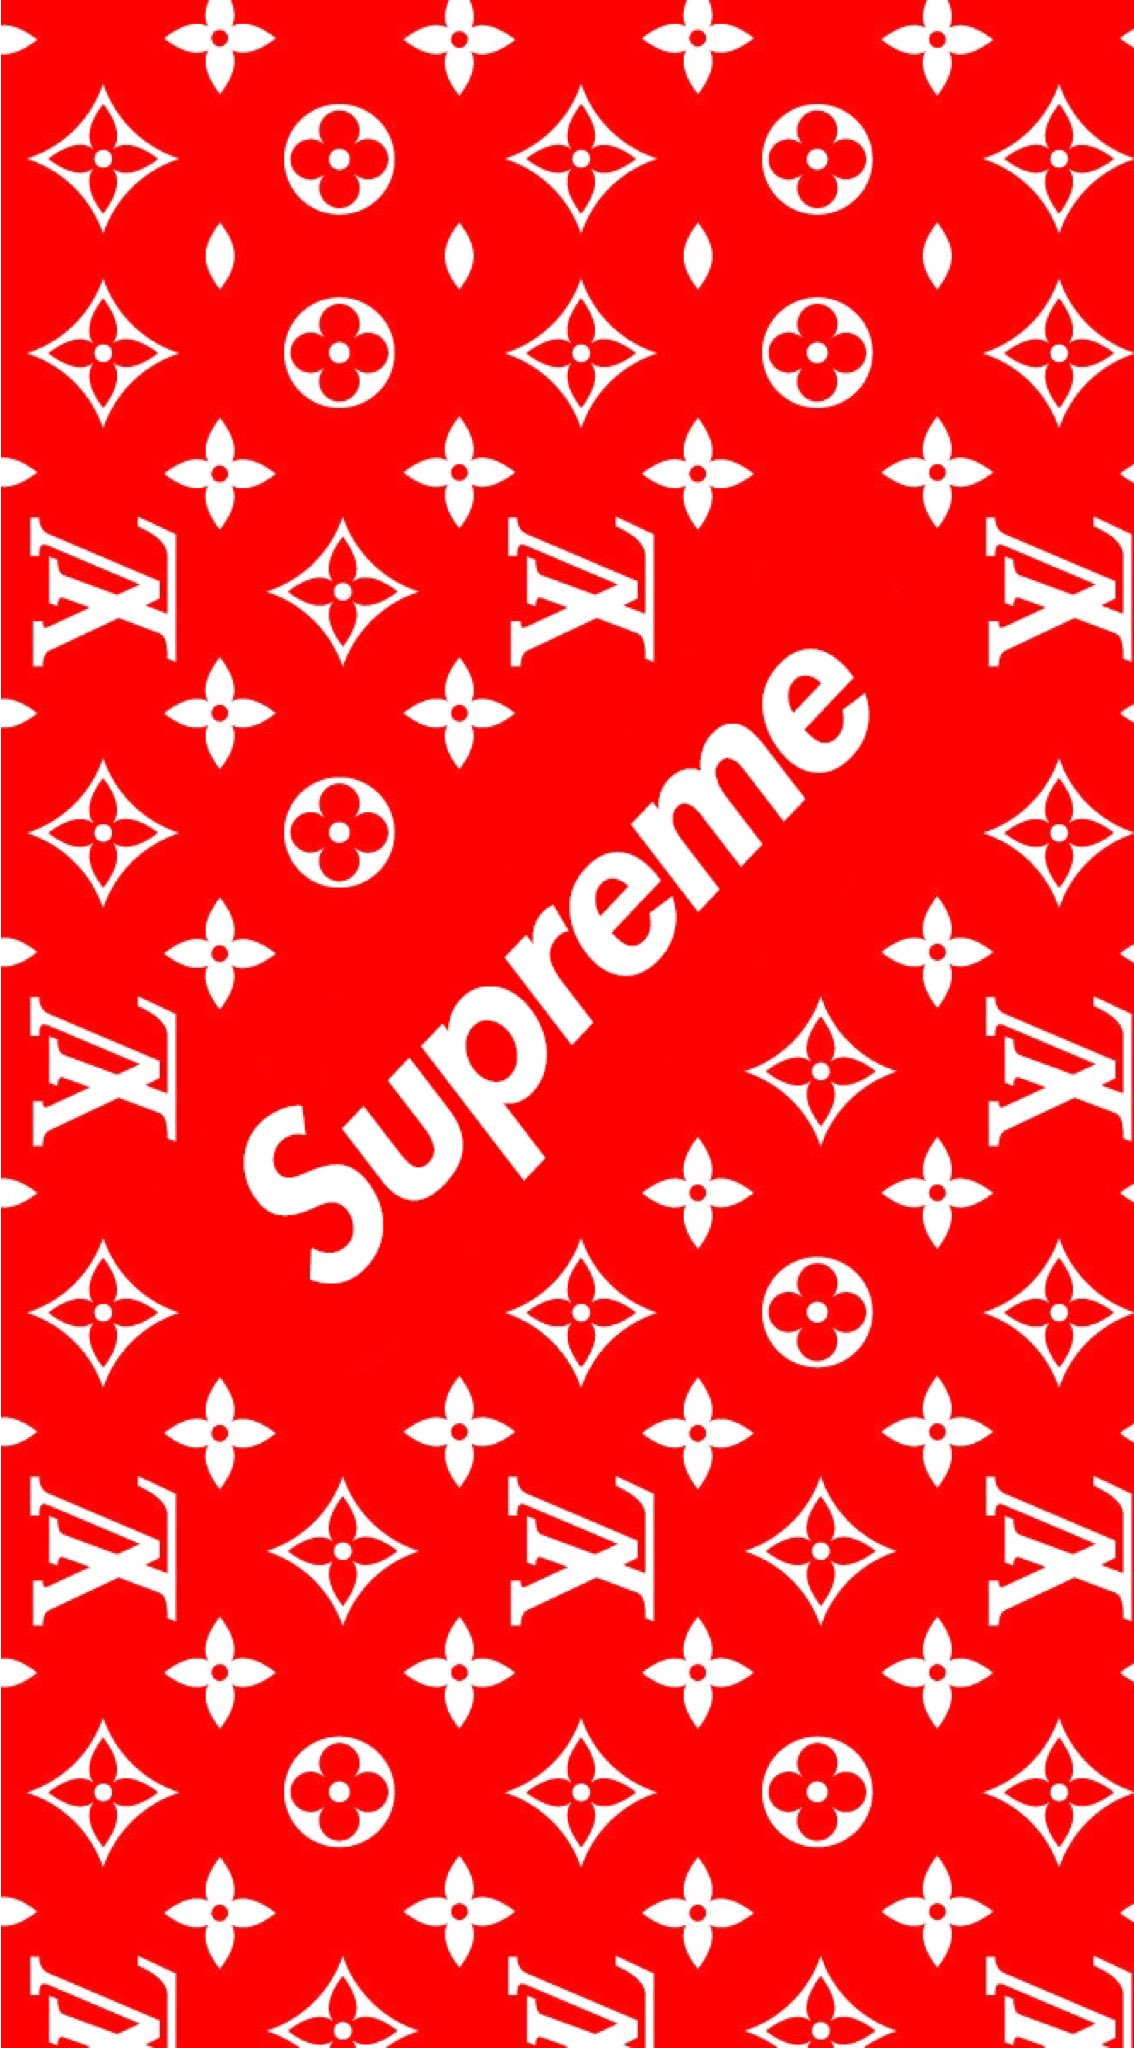 Godmeetsfashion on twitter good job rt modernnotoriety - Hd supreme iphone wallpaper ...